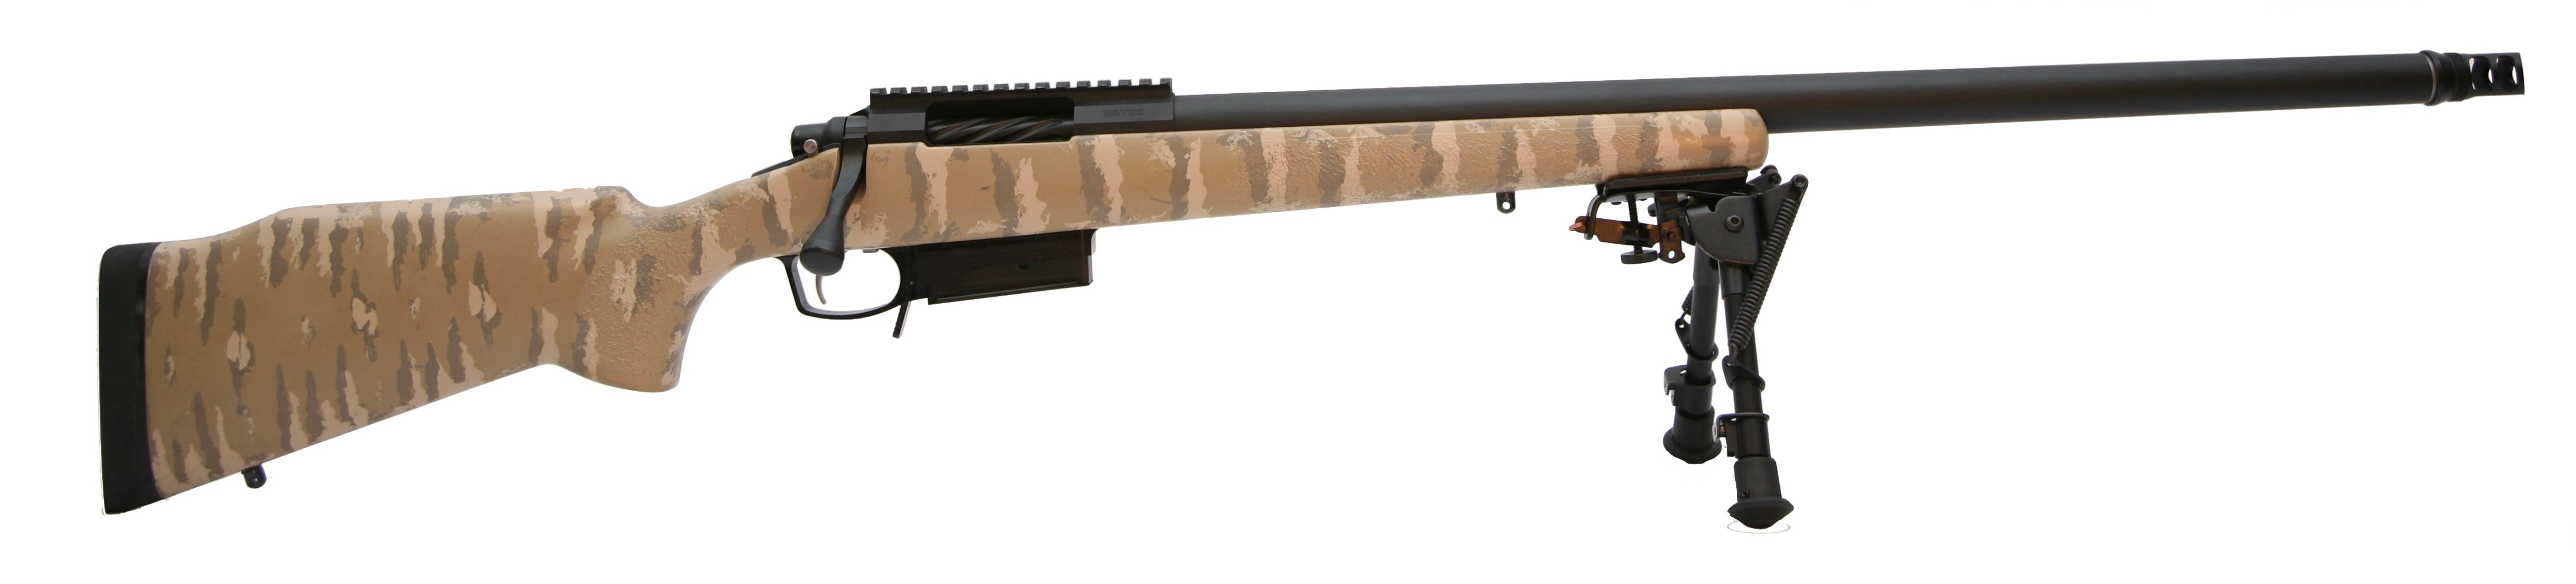 M0011 Precision Rifle Series rifles